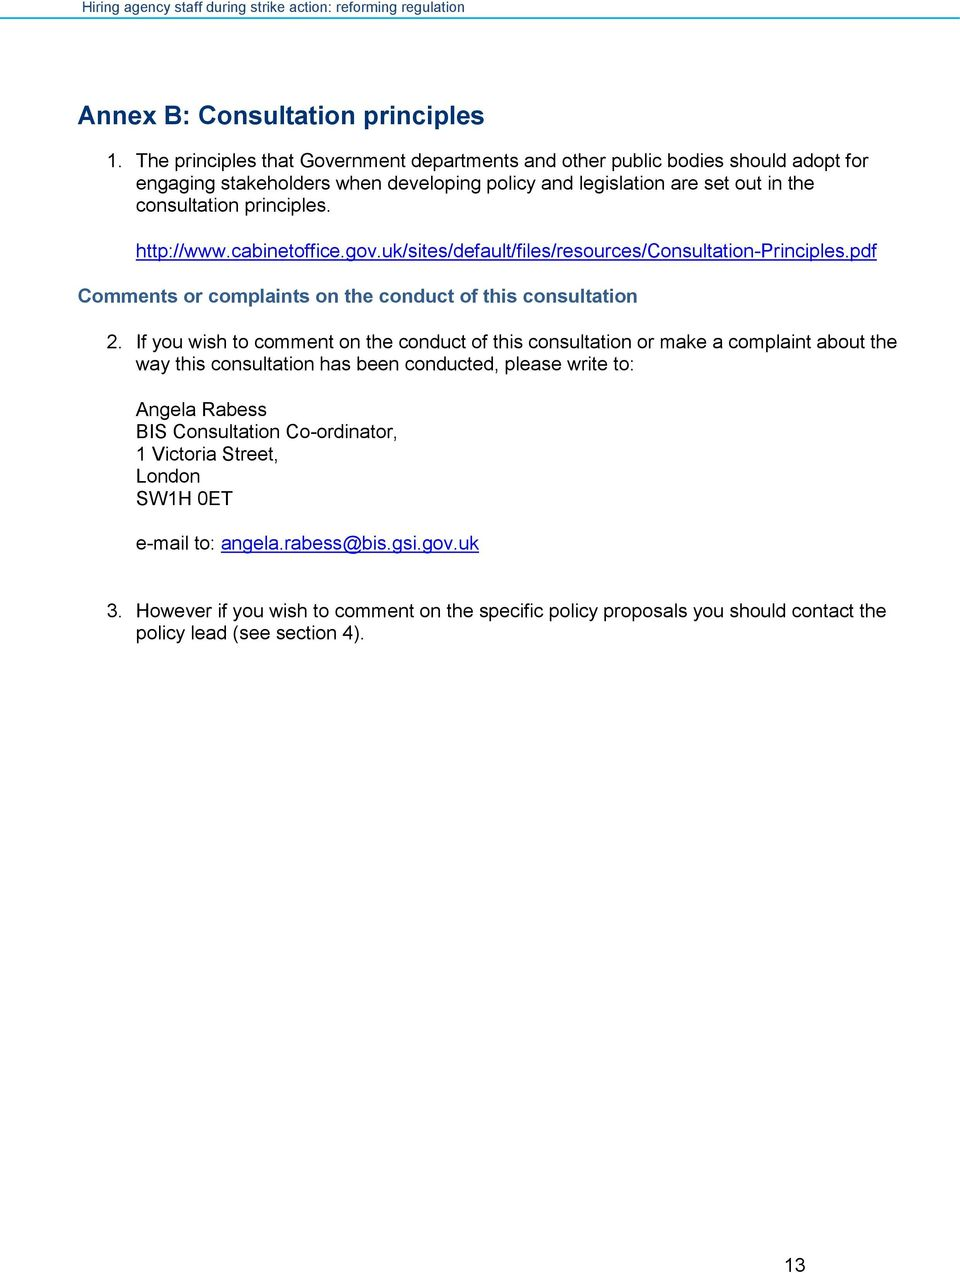 http://www.cabinetoffice.gov.uk/sites/default/files/resources/consultation-principles.pdf Comments or complaints on the conduct of this consultation 2.